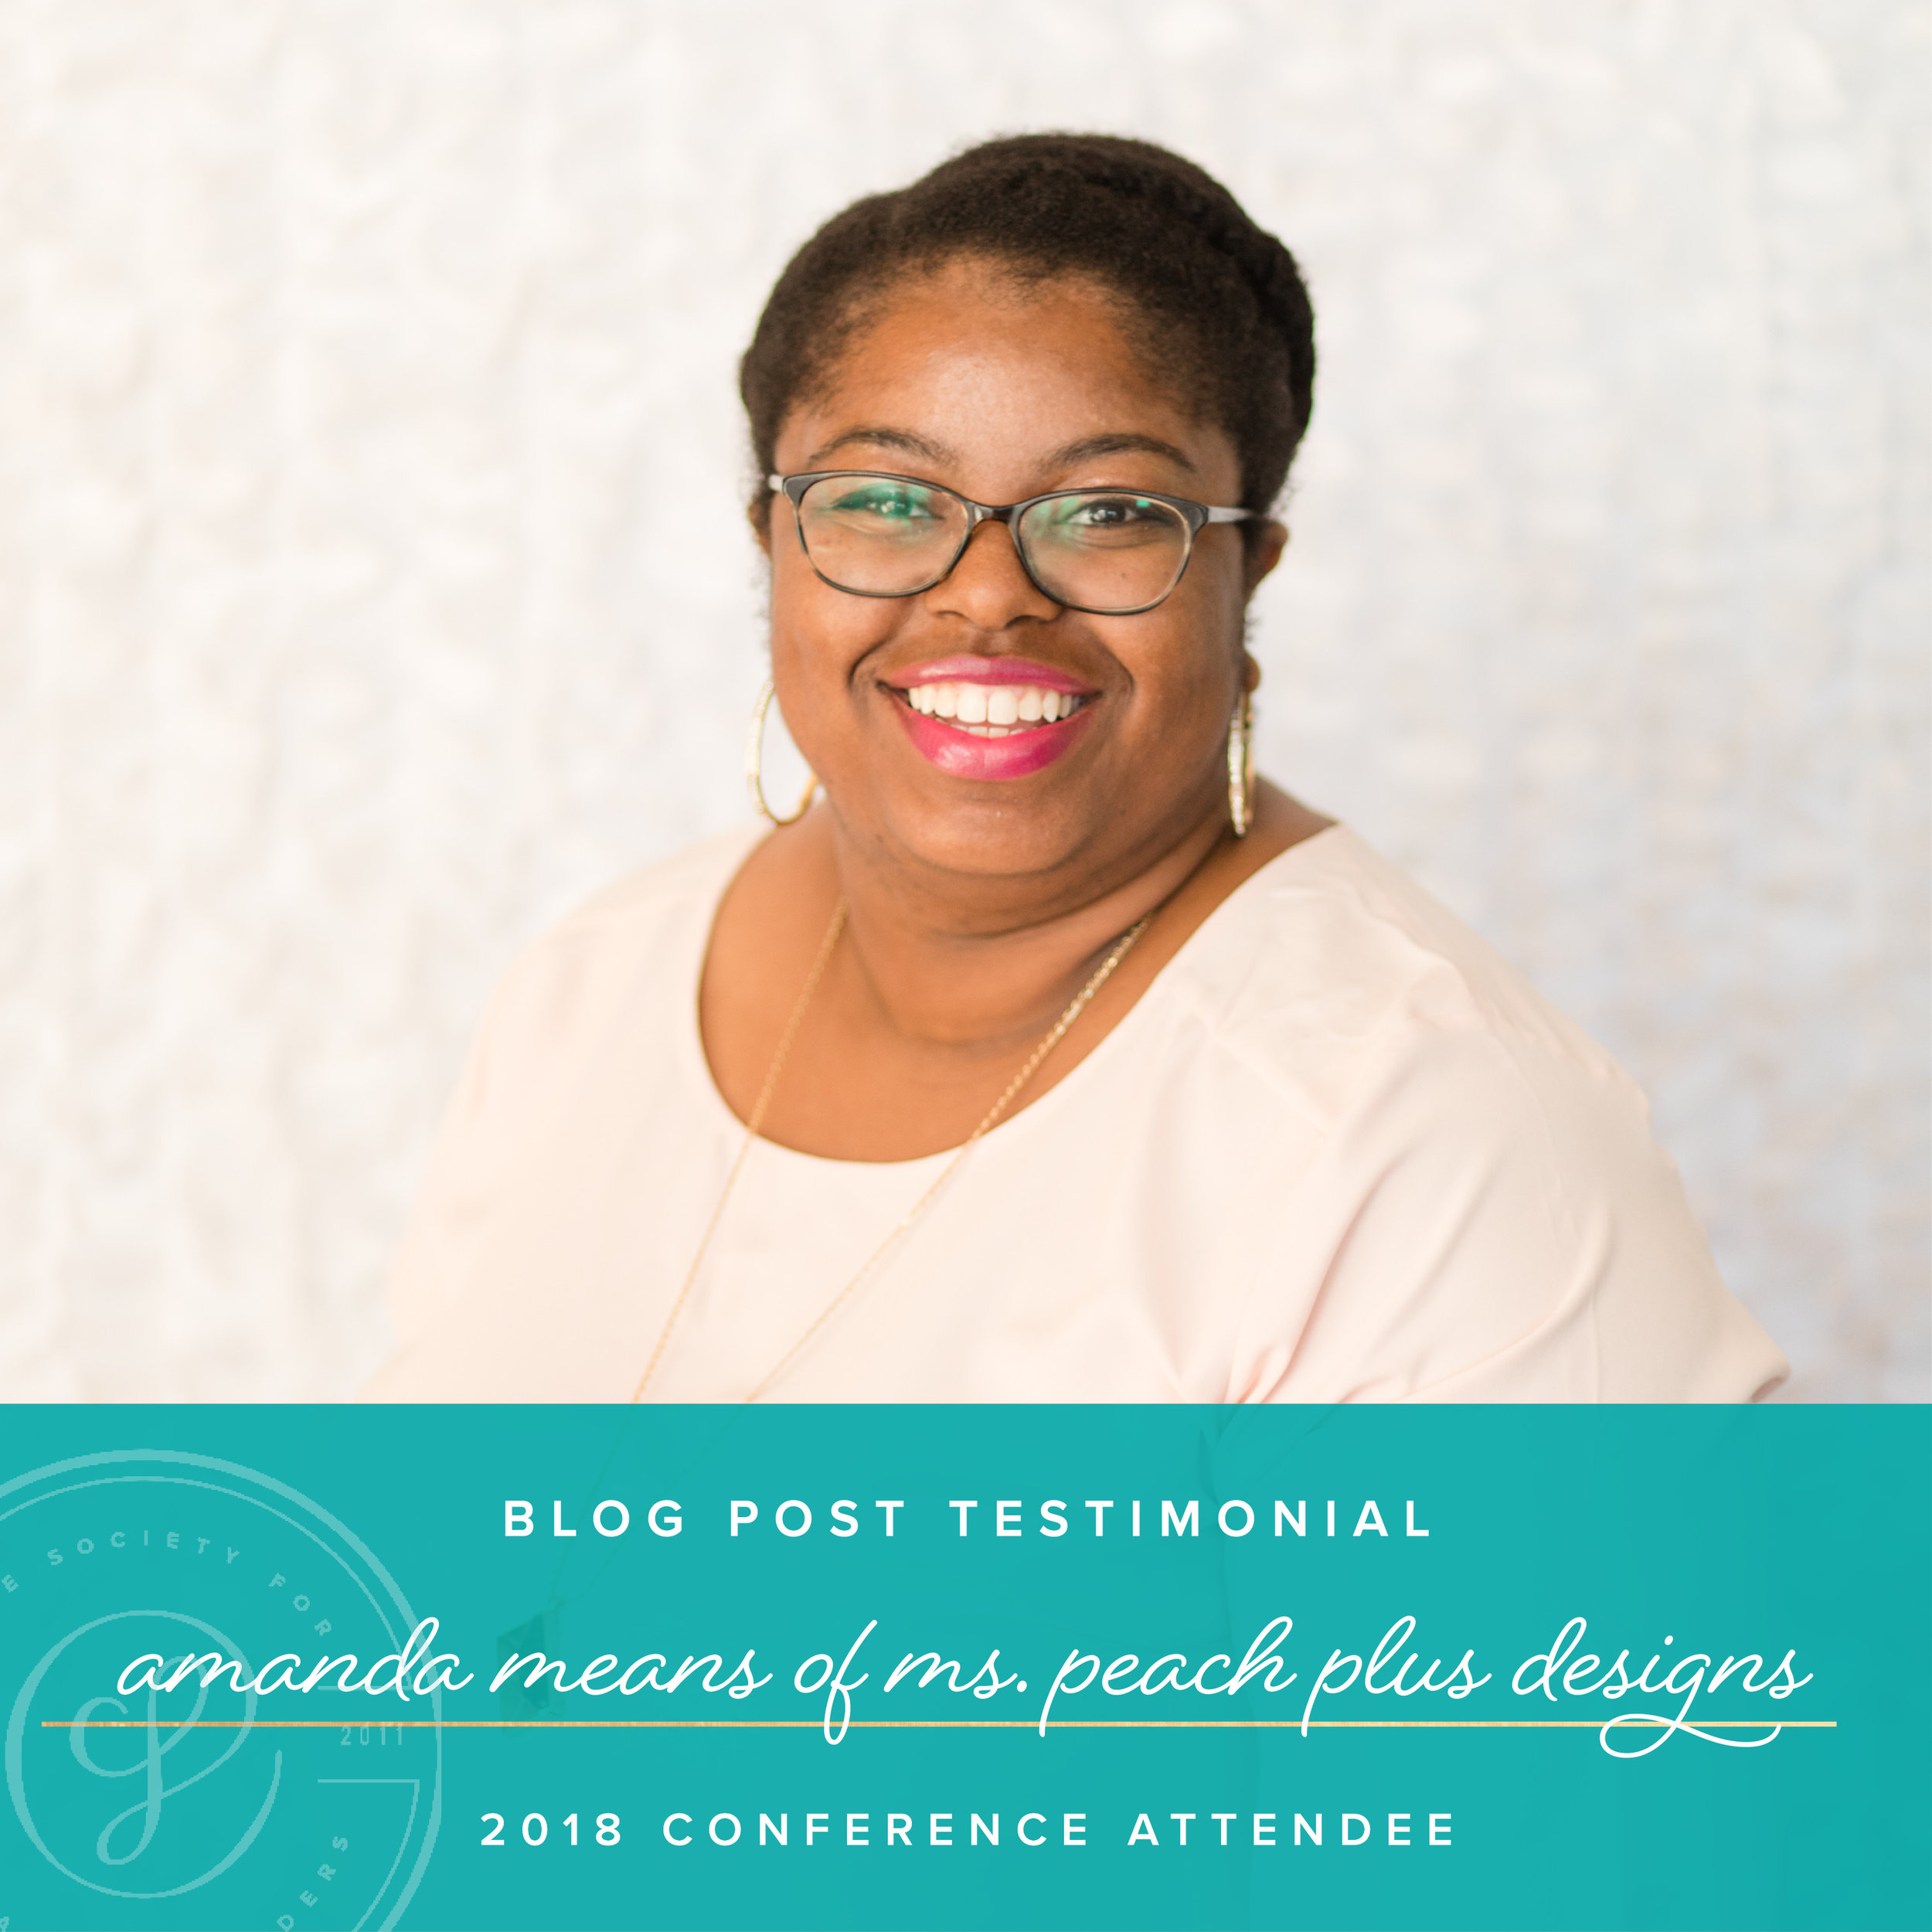 2018 Creative Founders Conference Testimonial by Ms. Peach Plus Designs